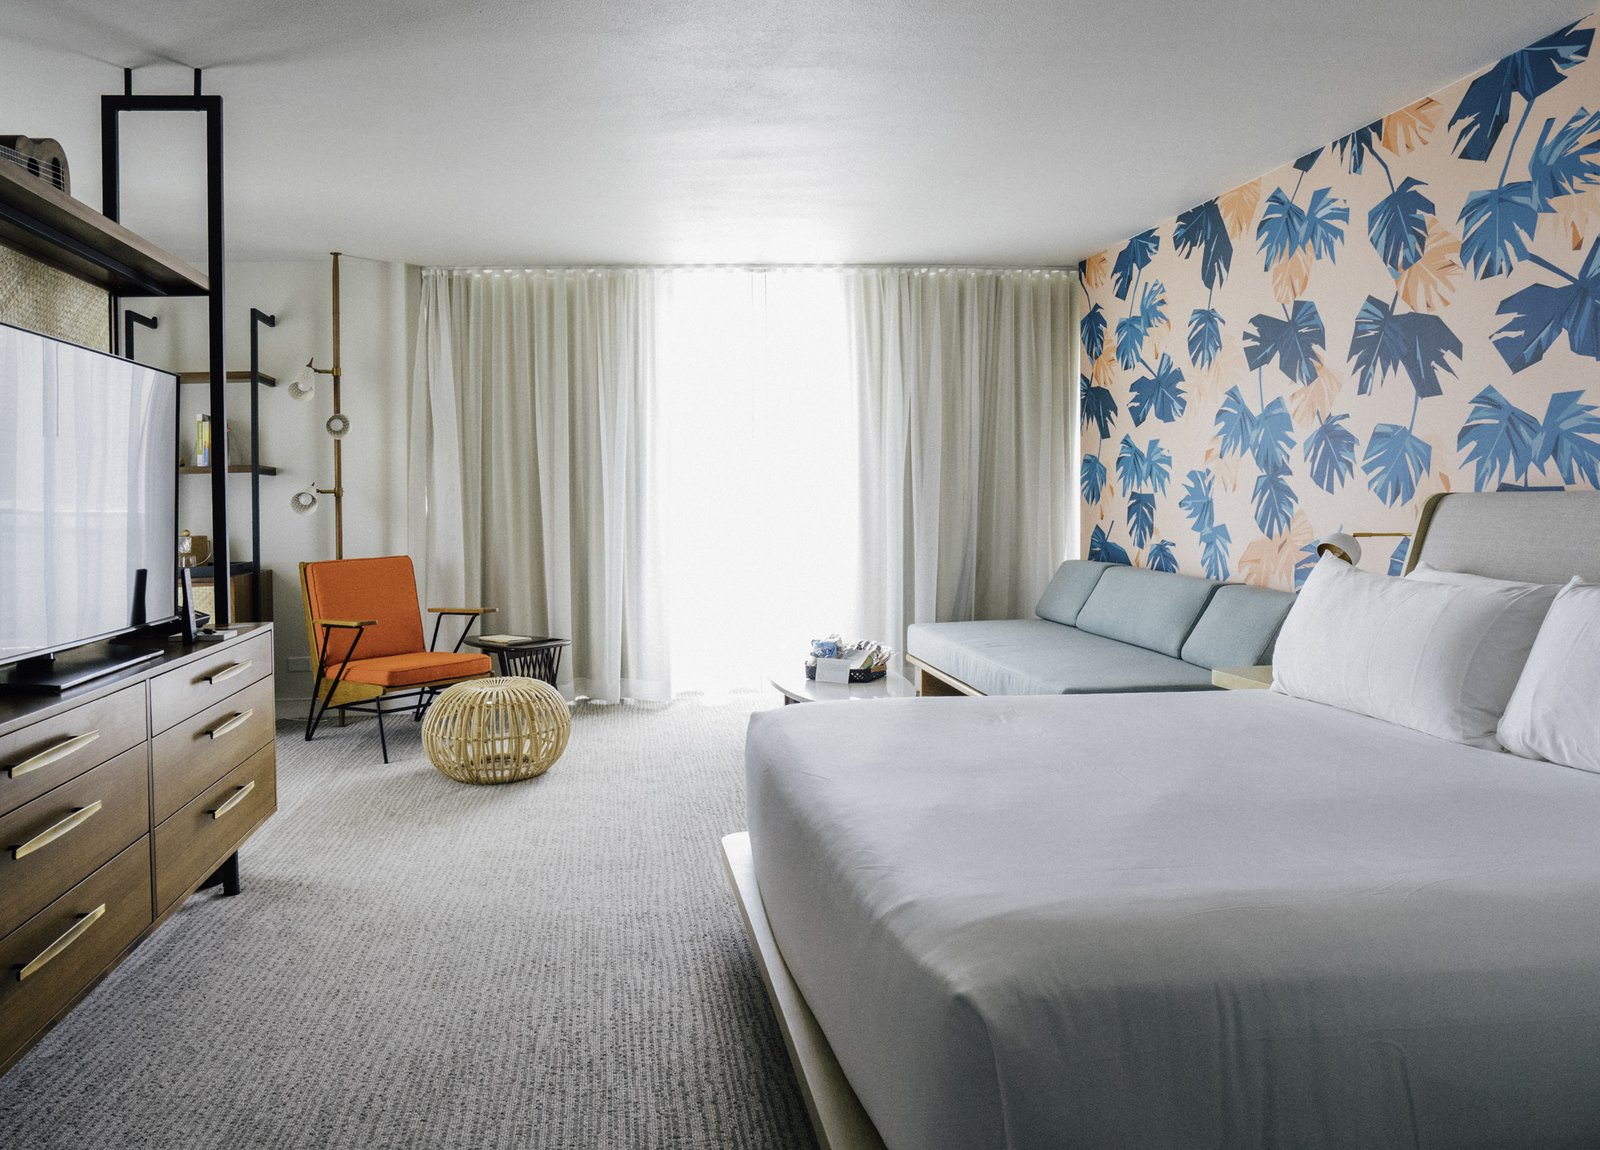 Waikiki's Midcentury Revival Continues to Flourish With a New Jet Set-Inspired Hotel - Photo 1 of 18